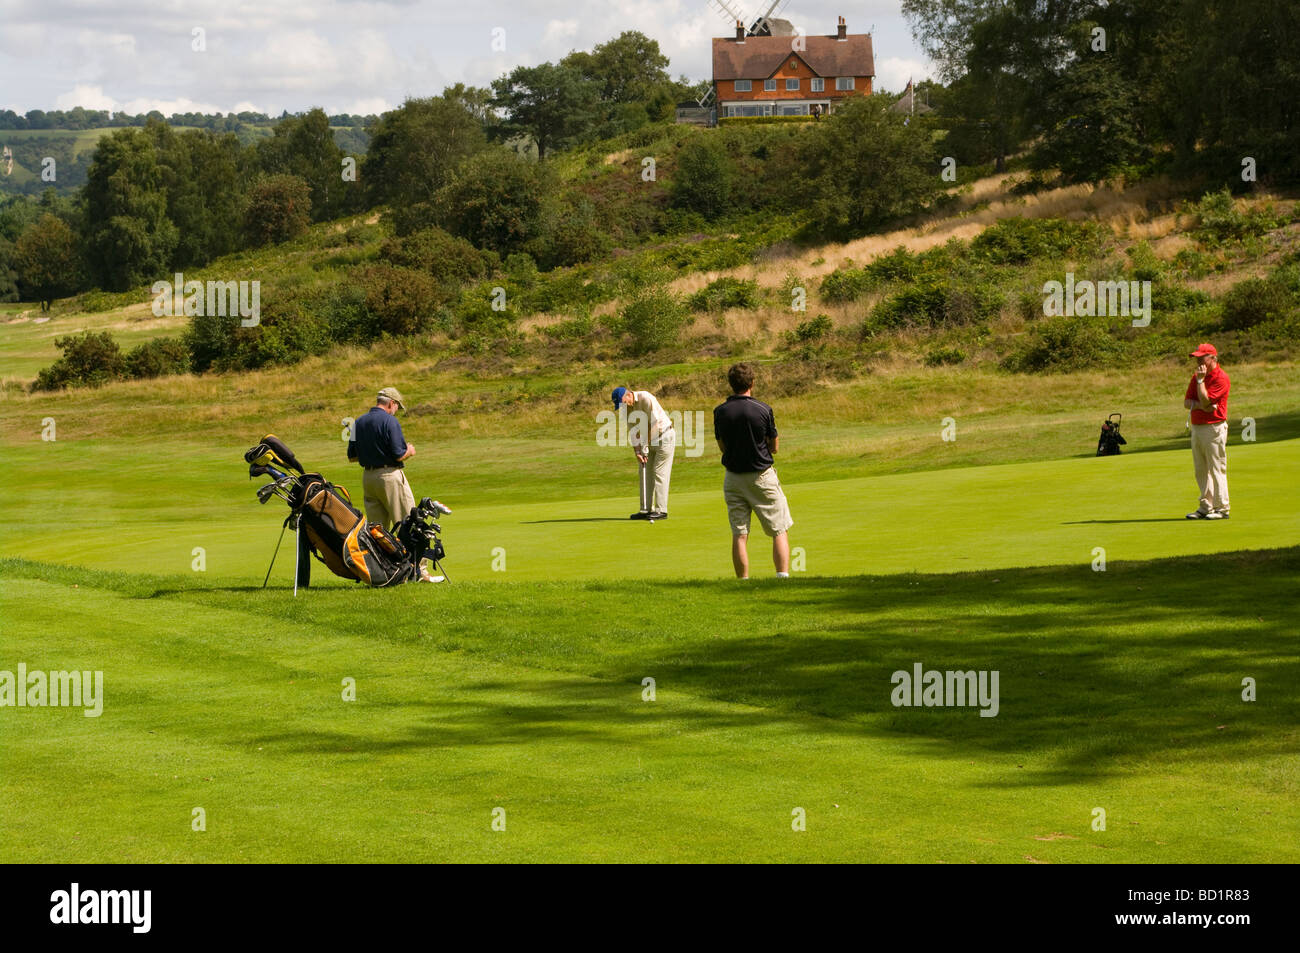 Golfers On Reigate Heath Golf Course With The Clubhouse In The Background Surrey England - Stock Image